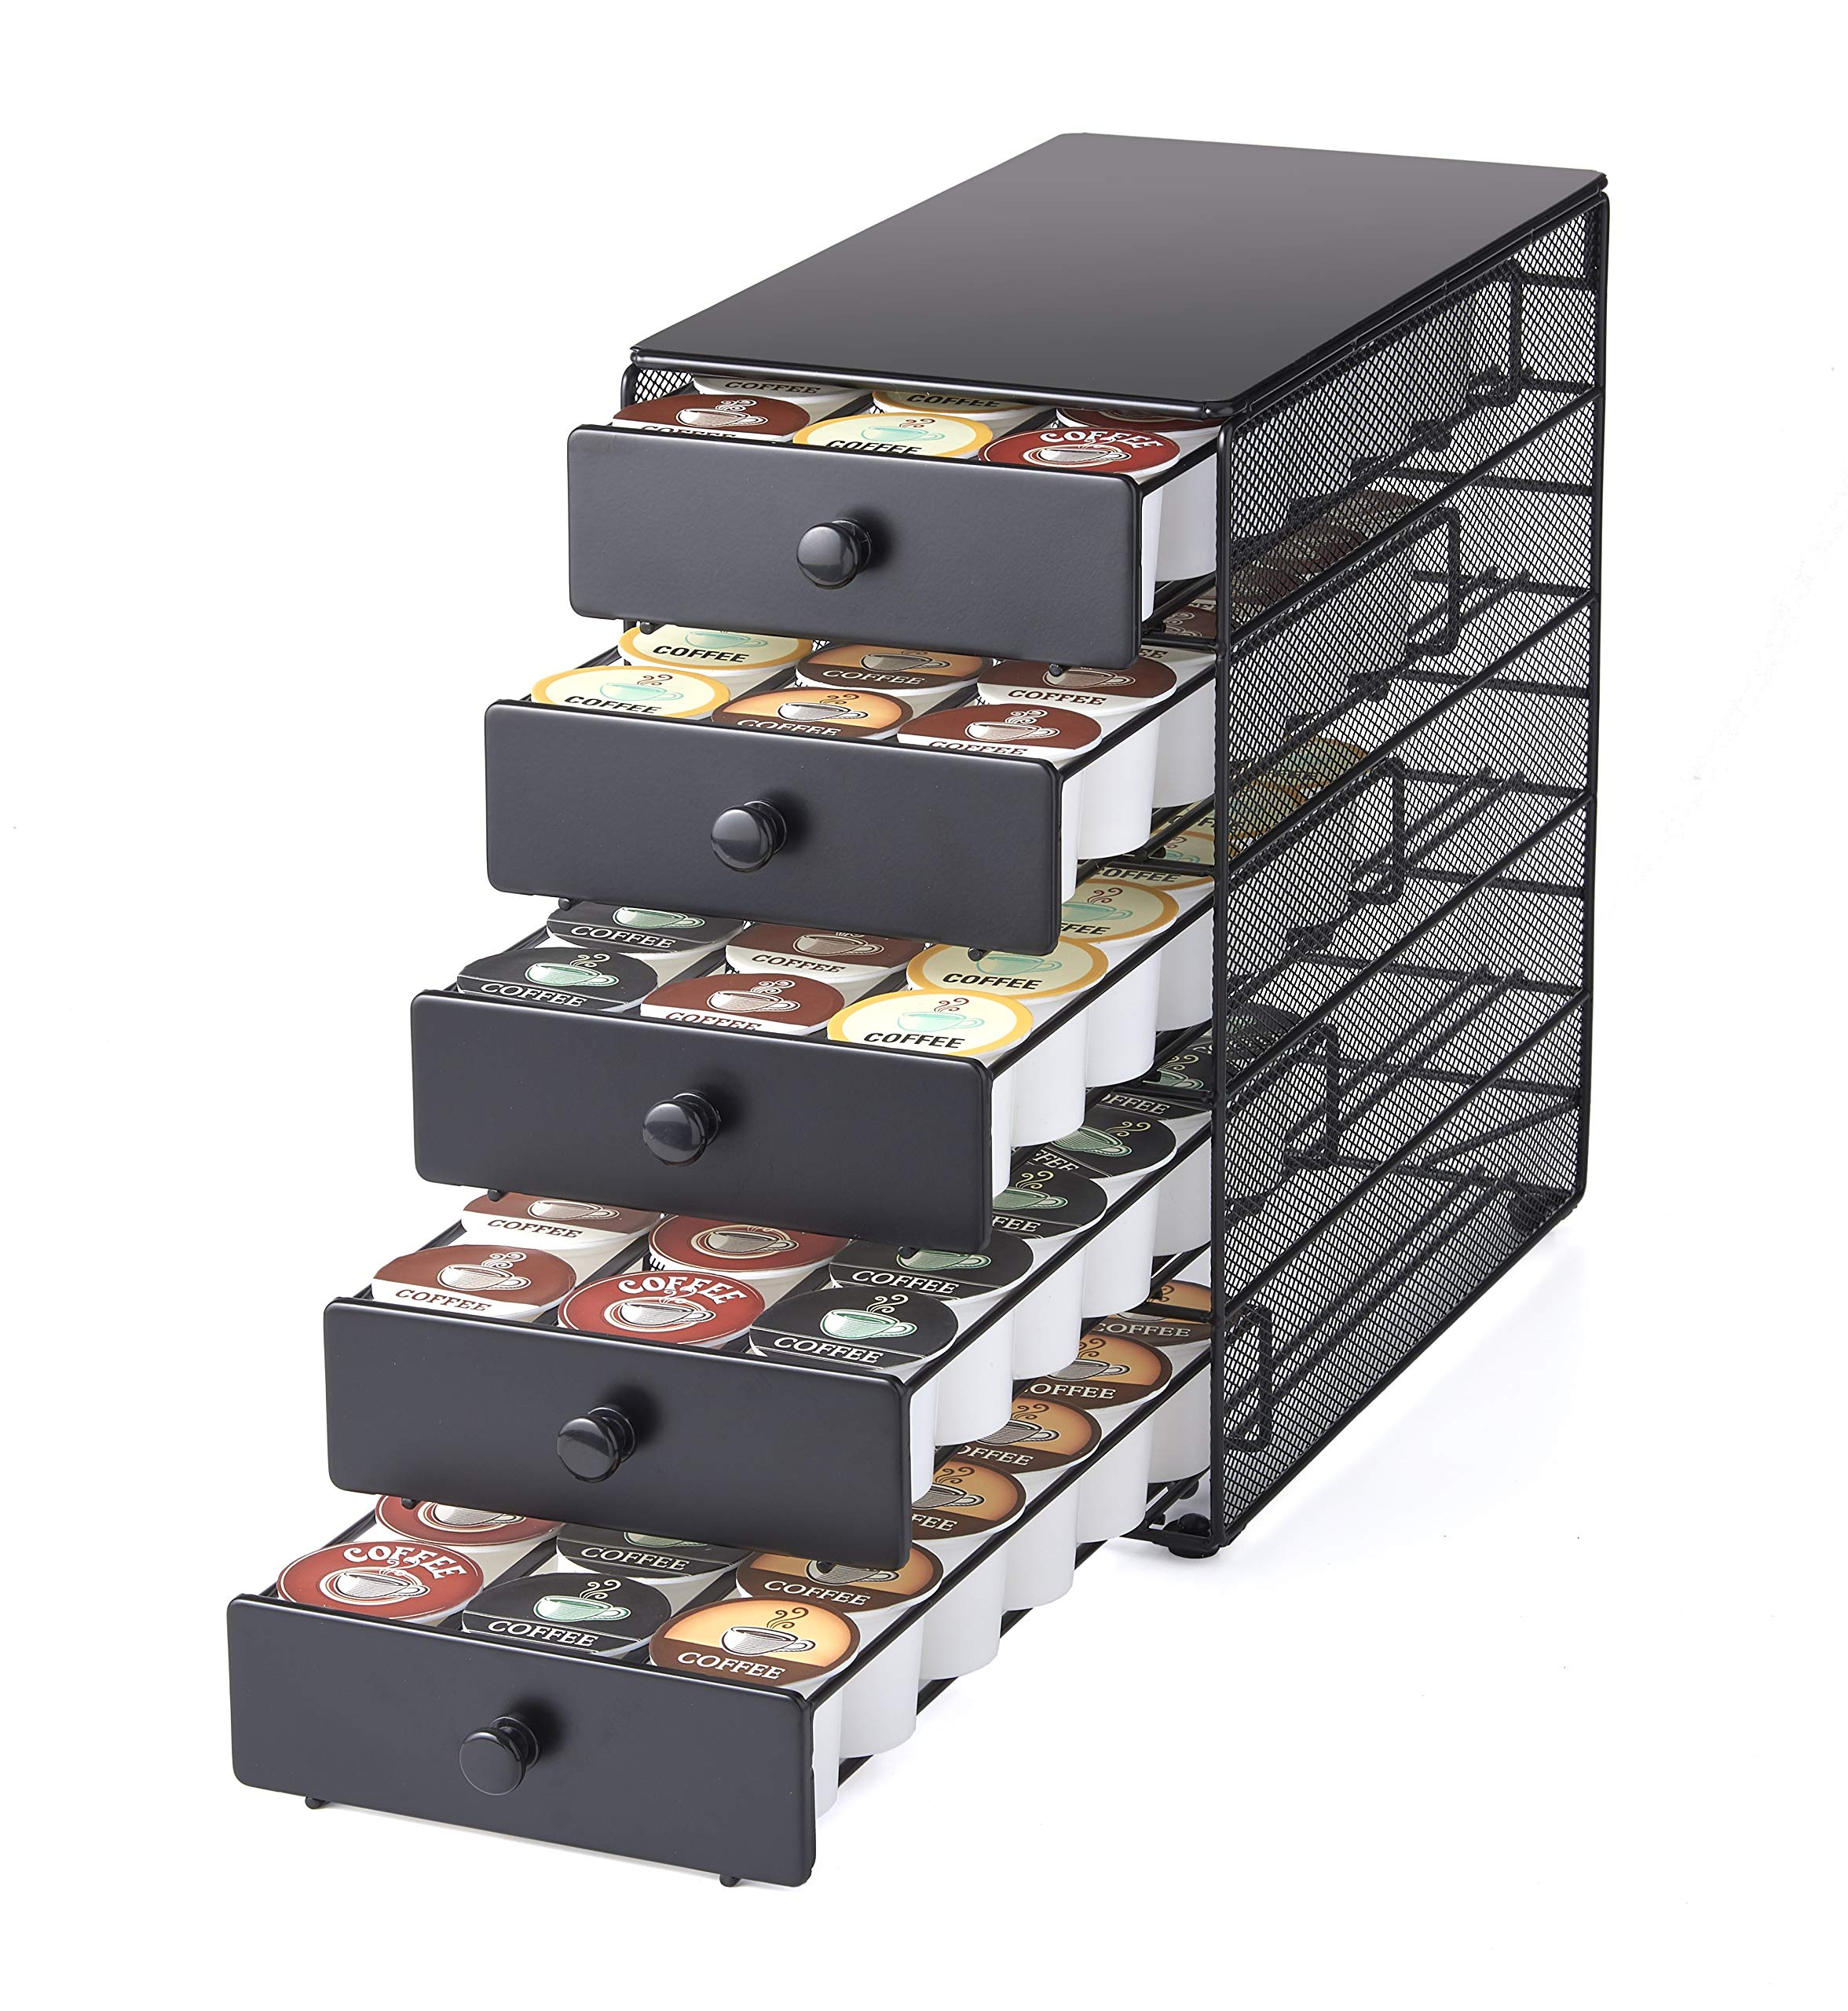 NIFTY Solutions 90 K-Cup Capacity 5-Tier Coffee Pod Storage Drawer, Satin Black by NIFTY